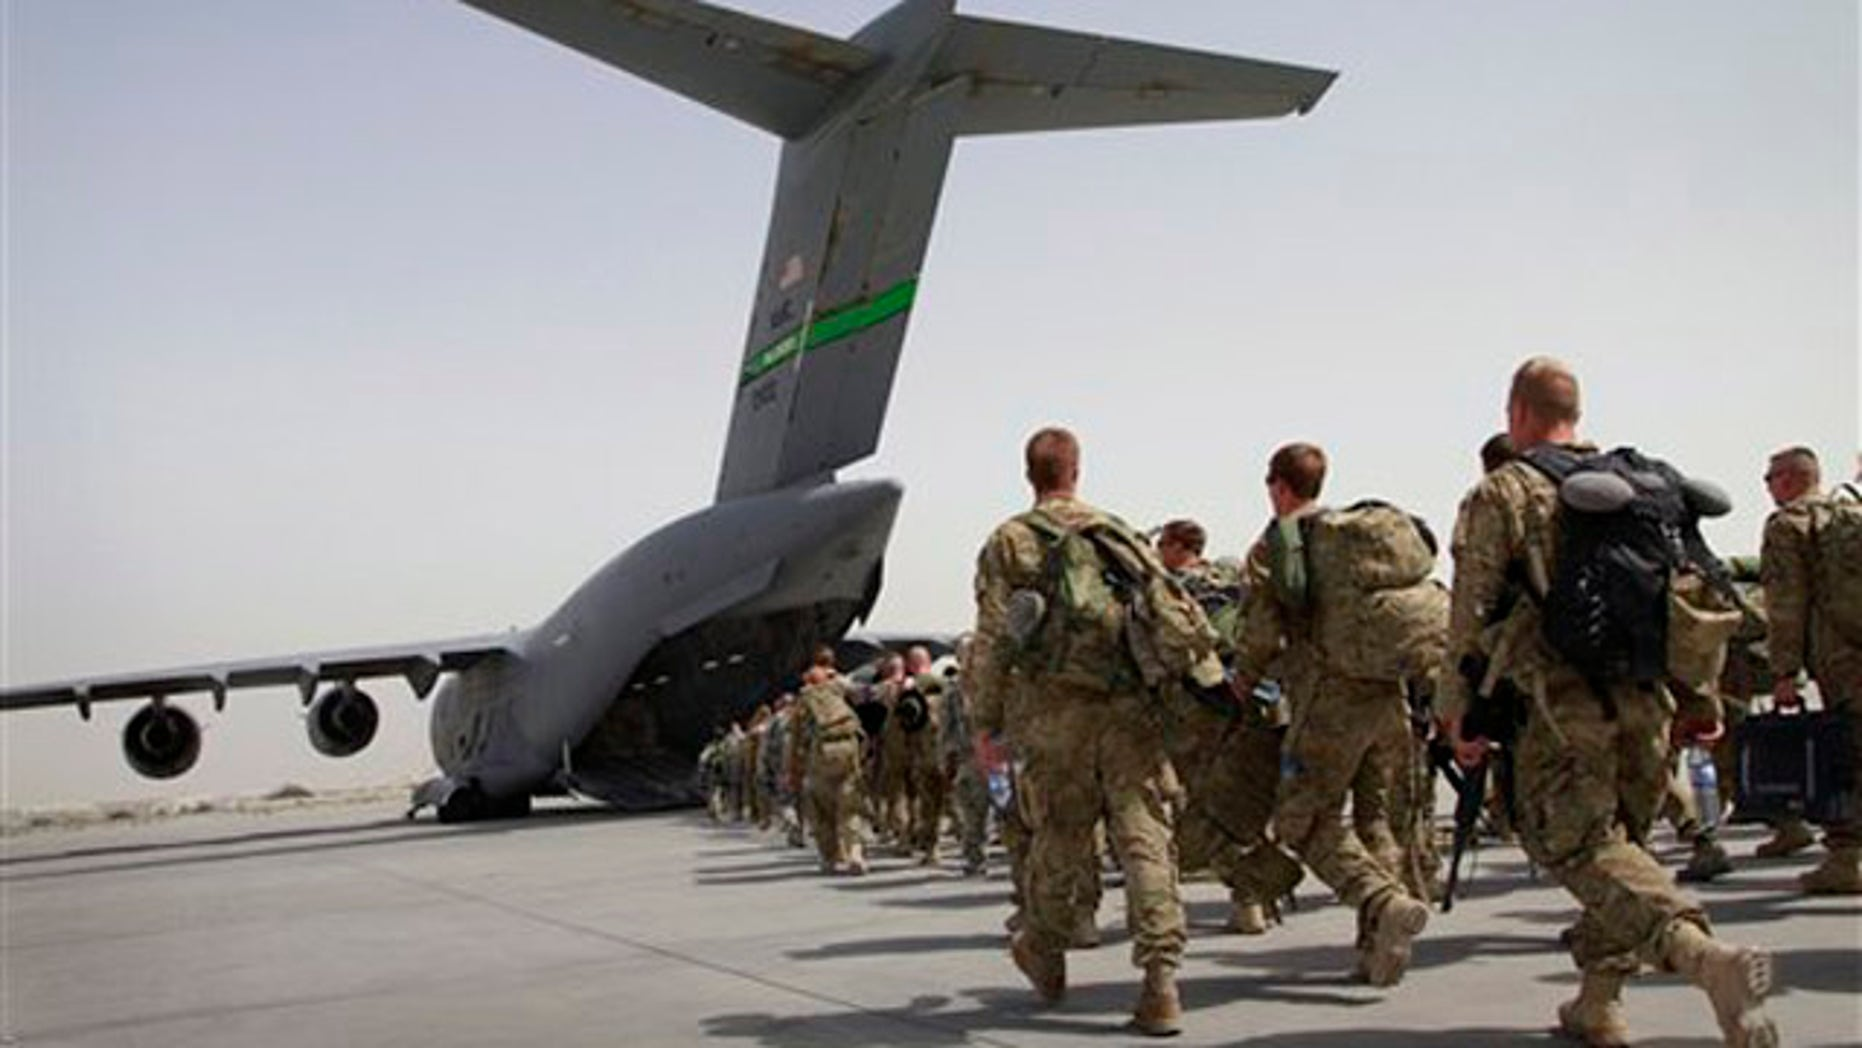 U.S. soldiers walk to board a U.S. military plane, as they leave Afghanistan at the U.S. base in Bagram on July 14.